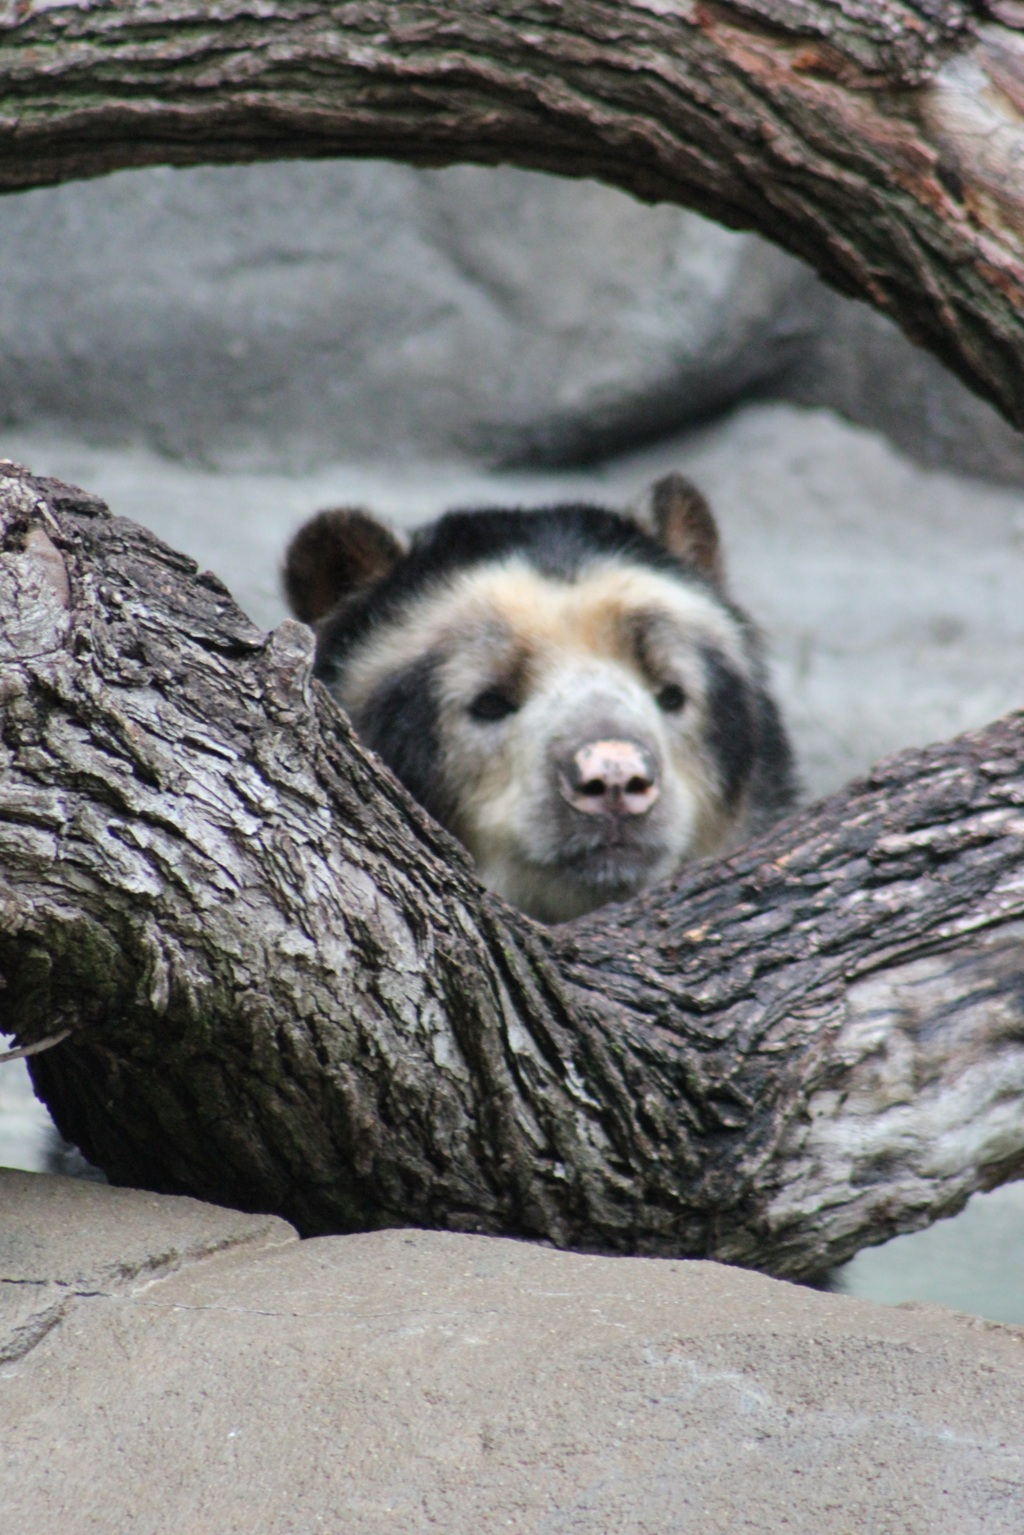 Bear chilling on a log